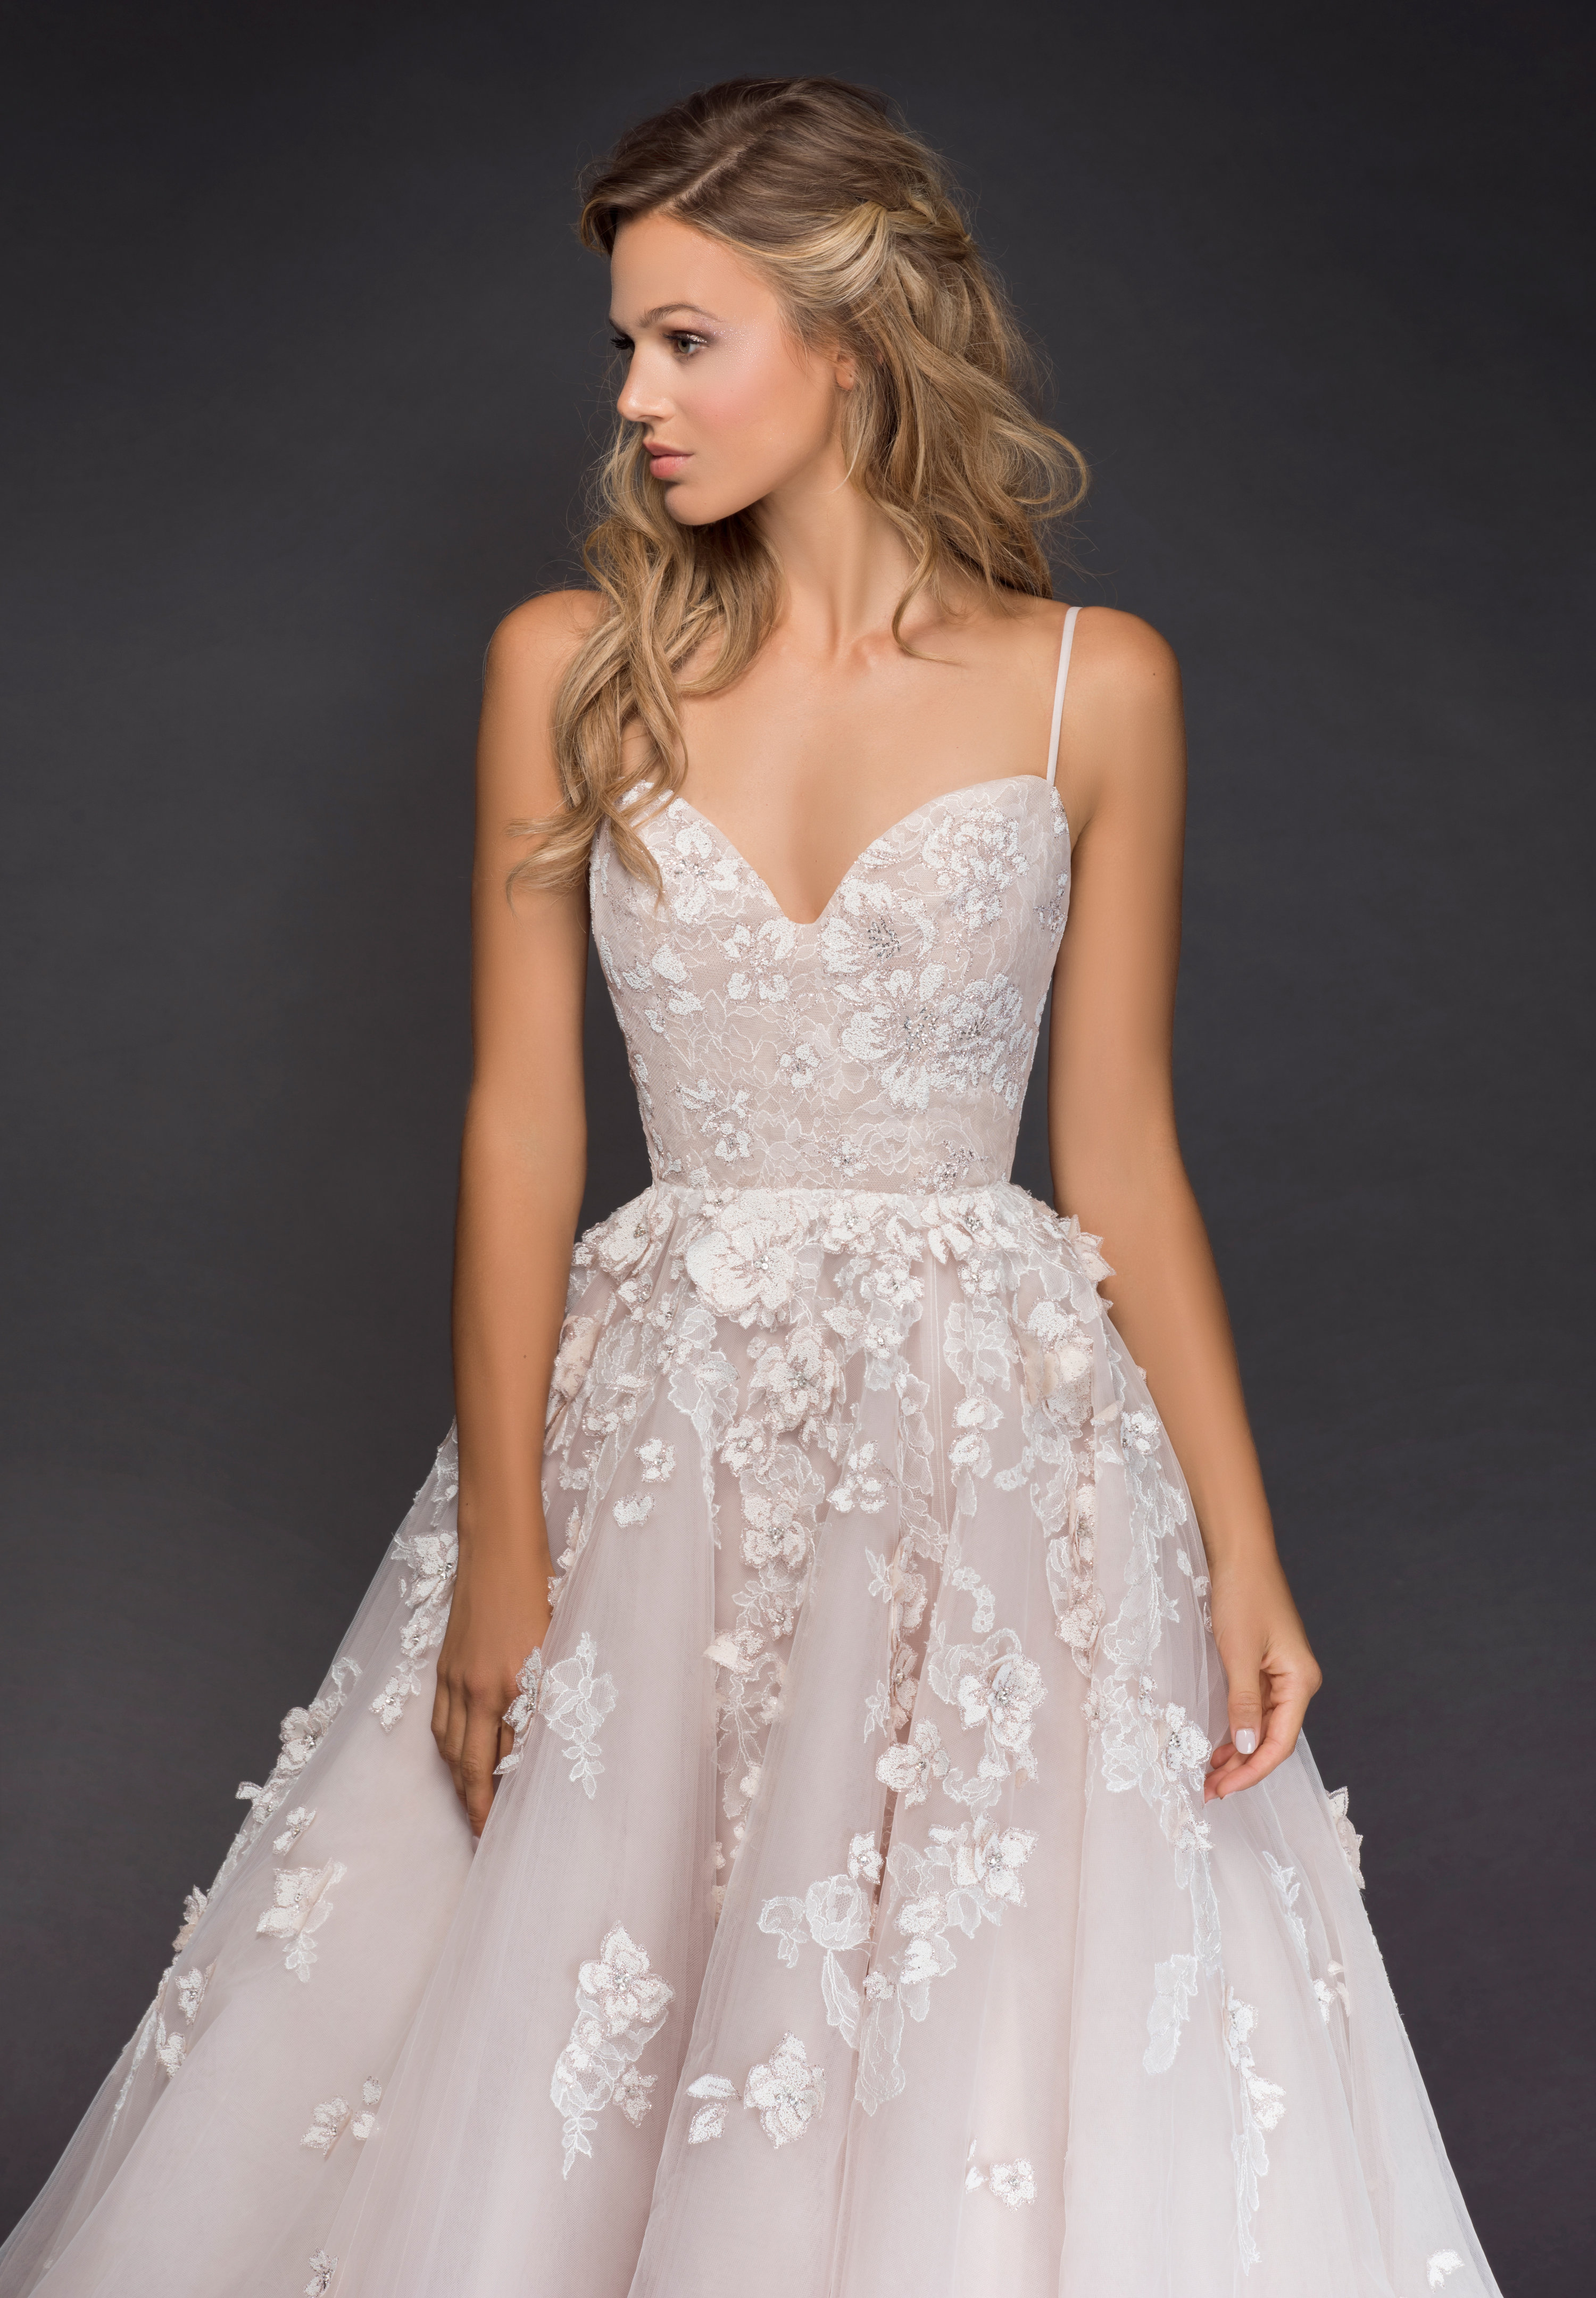 Bridal Gowns and Wedding Dresses by JLM Couture - Style 6814 Arden